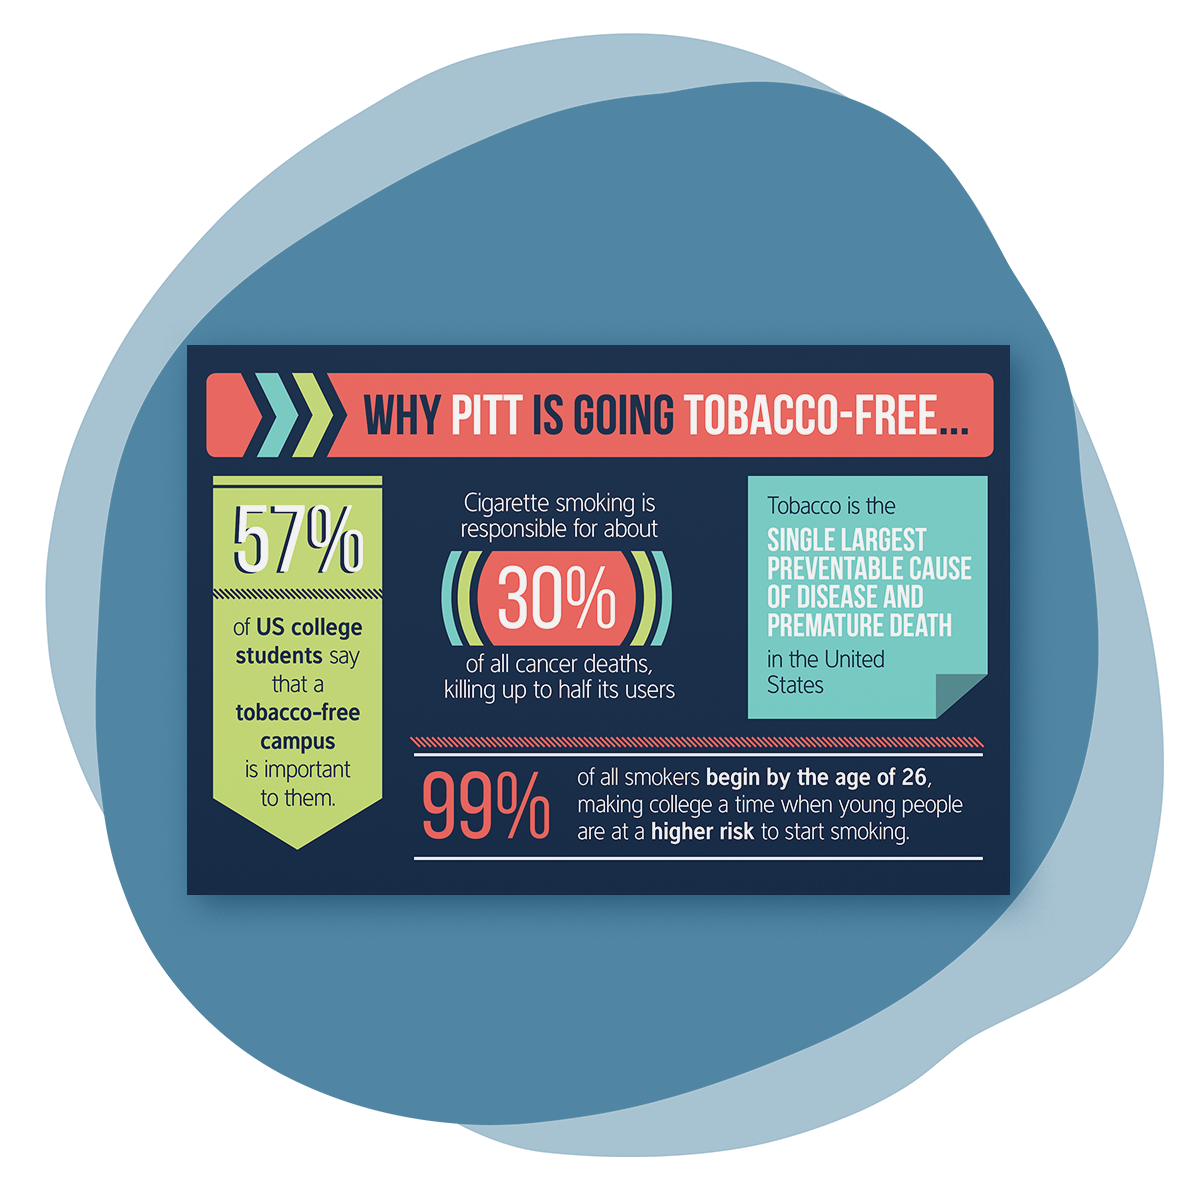 """Organic blue splotch shape with a mockup of a postcard overlaid. The card has a dark blue background and features various infographic/statistical elements in lime green, coral, light teal blue, and white. The title is """"Why Pitt is Going Tobacco-Free..."""""""